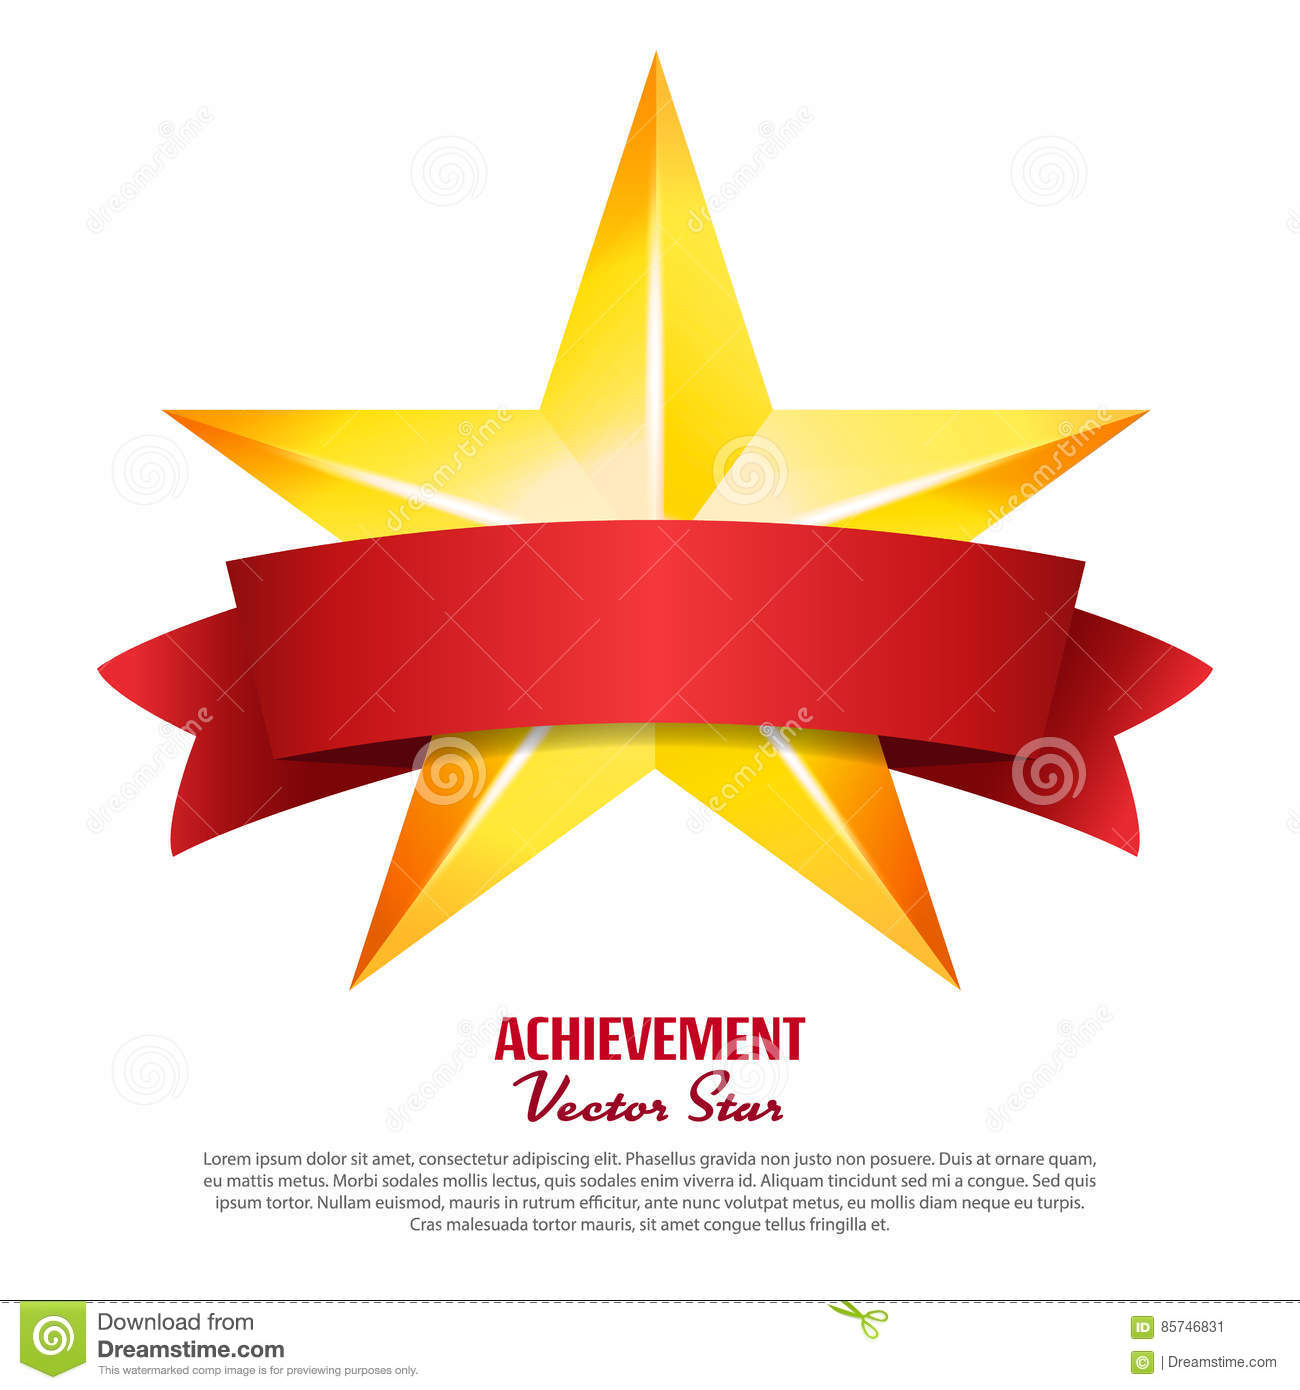 Achievement Vector Star With Red Ribbon Yellow Sign Place For Text